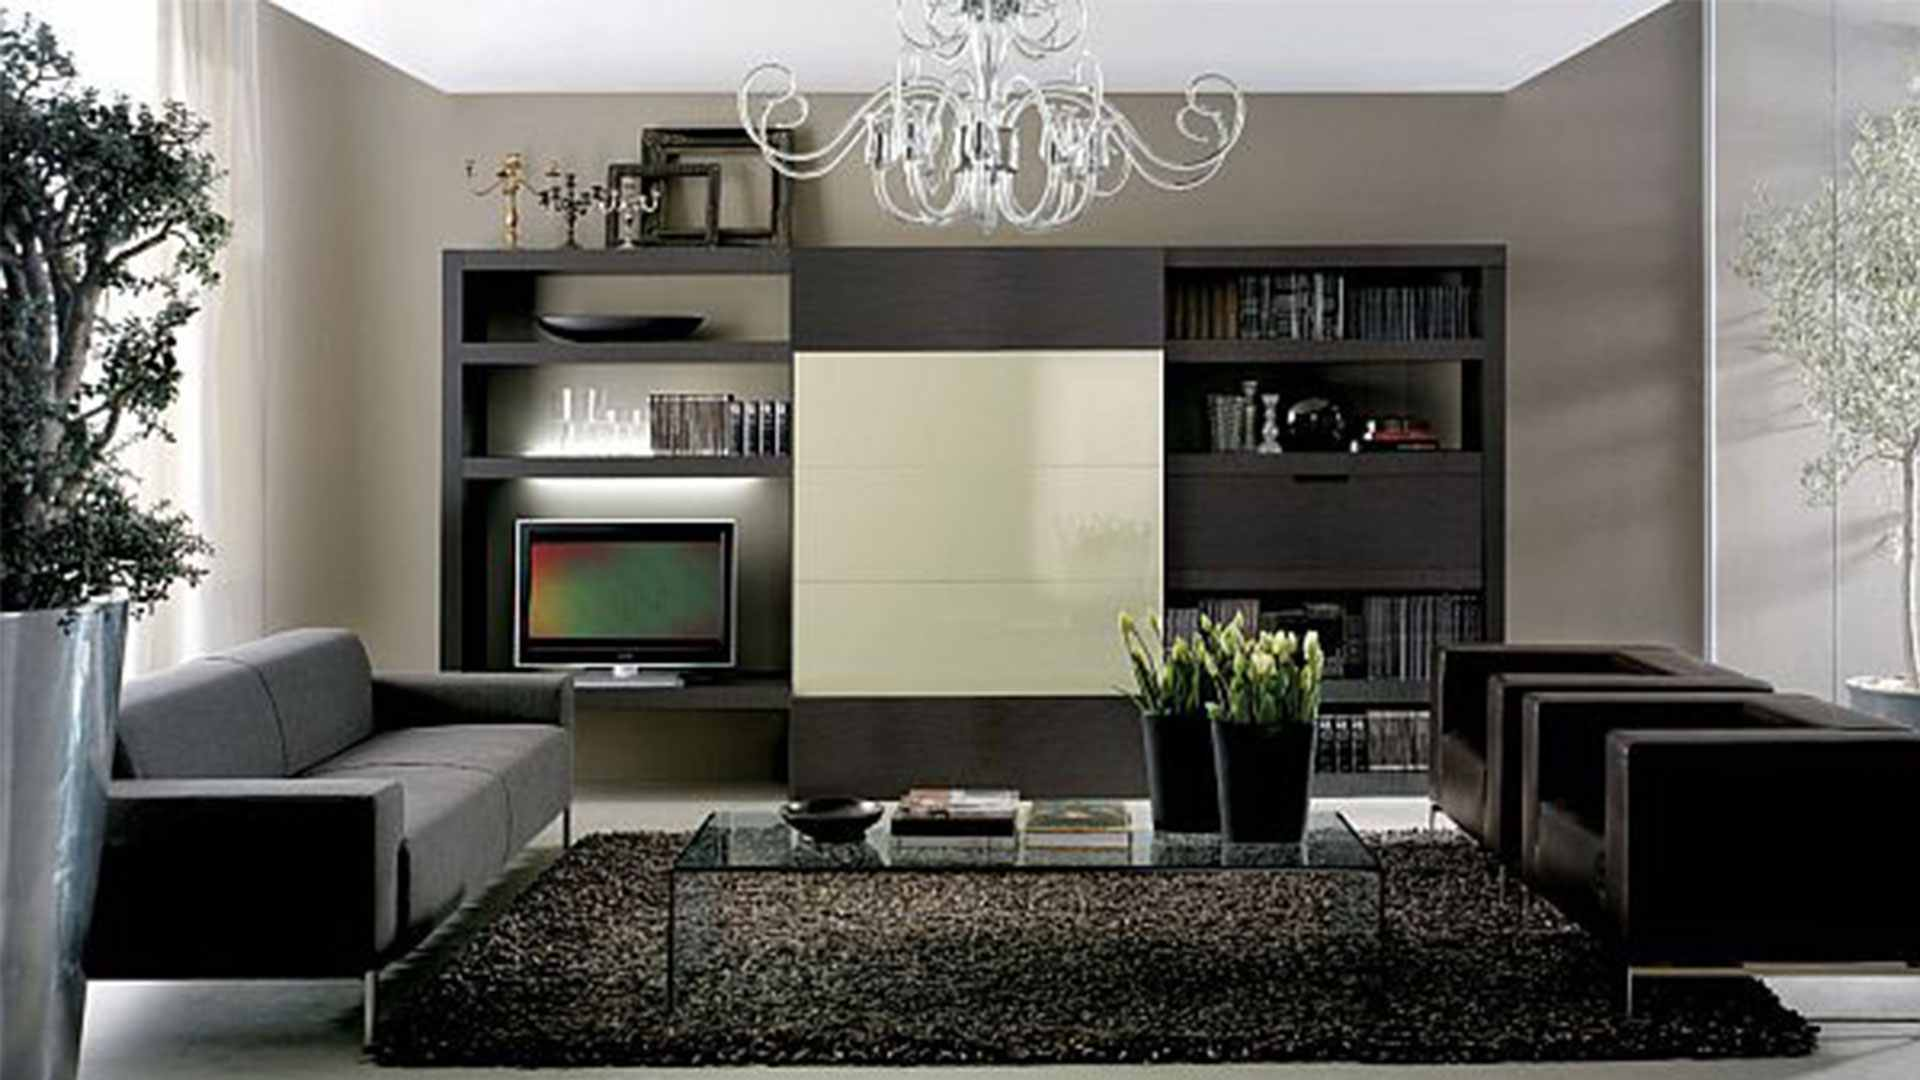 Chandelier Tv Cabinet Black Sofa